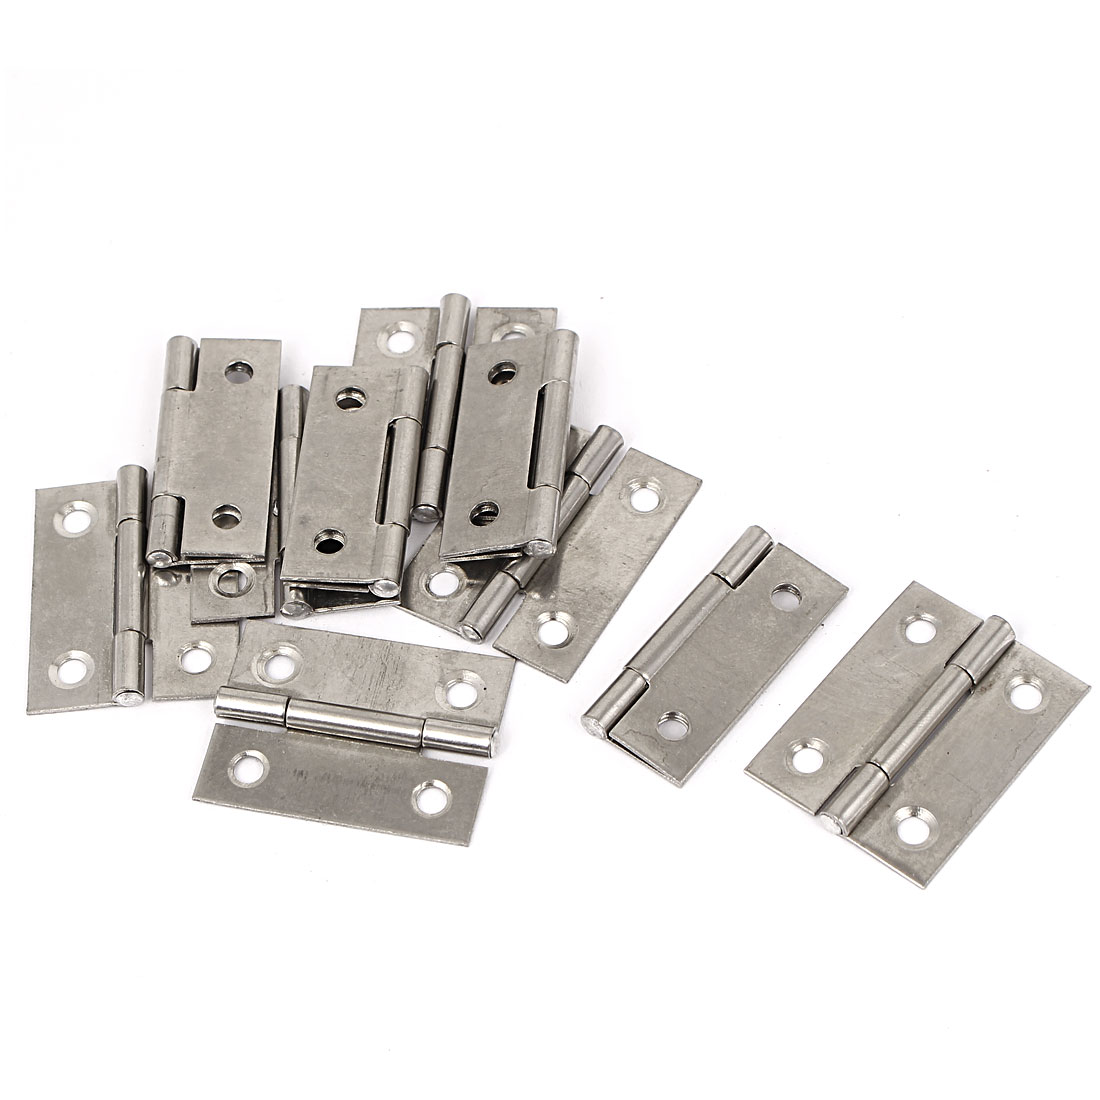 38mmx28mmx4mm Cabinet Drawer 4 Holes Screw Mounted Hinges 10pcs